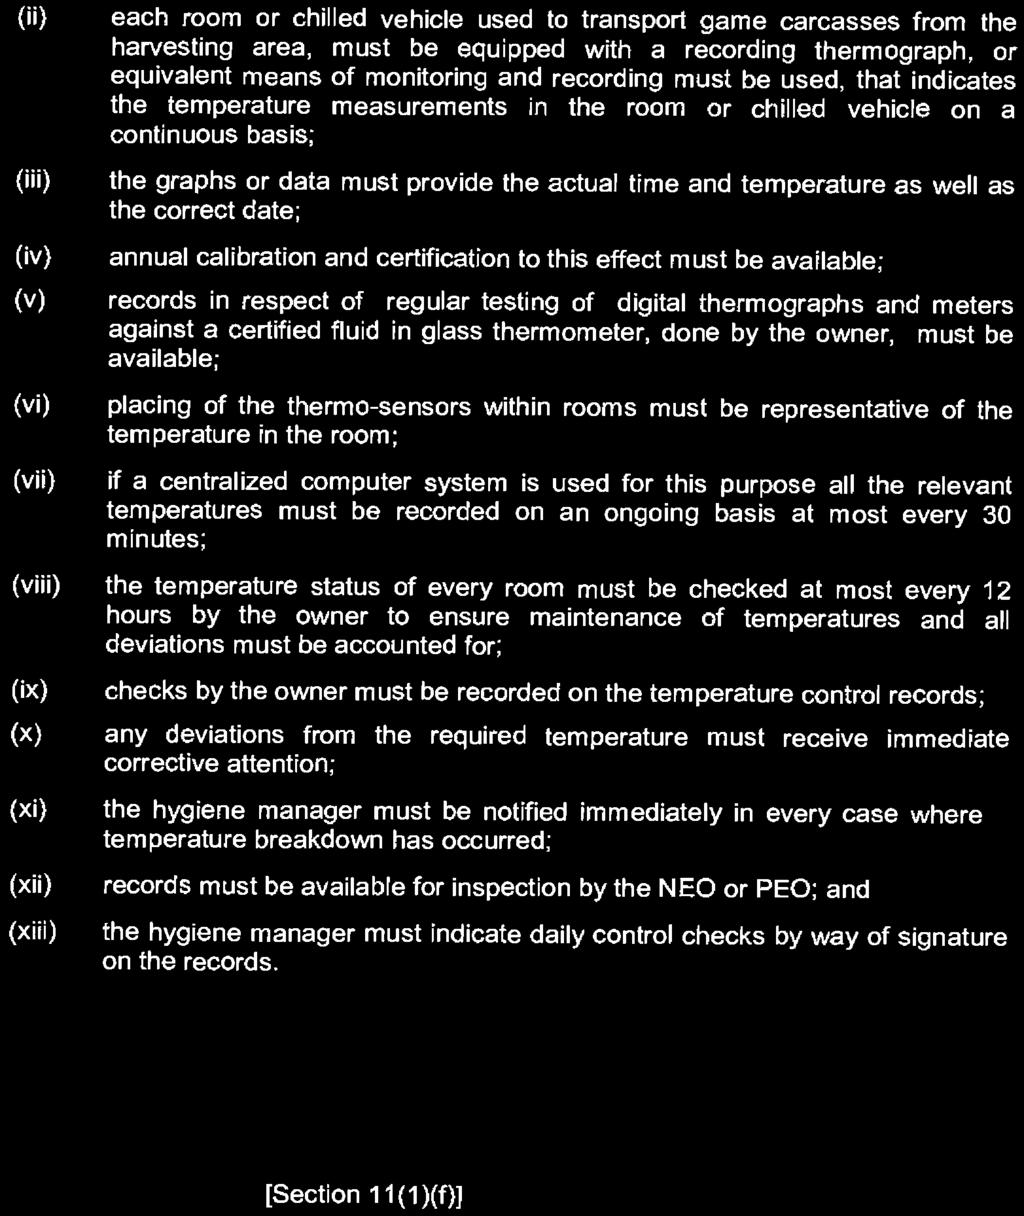 Government Gazette Staatskoerant Pdf 39re Vehicle May Not Be Equipped Below Is The System Wiring Diagrams Equivalent Means Of Monitoring And Recording Must Used That Indicates Temperature Measurements In